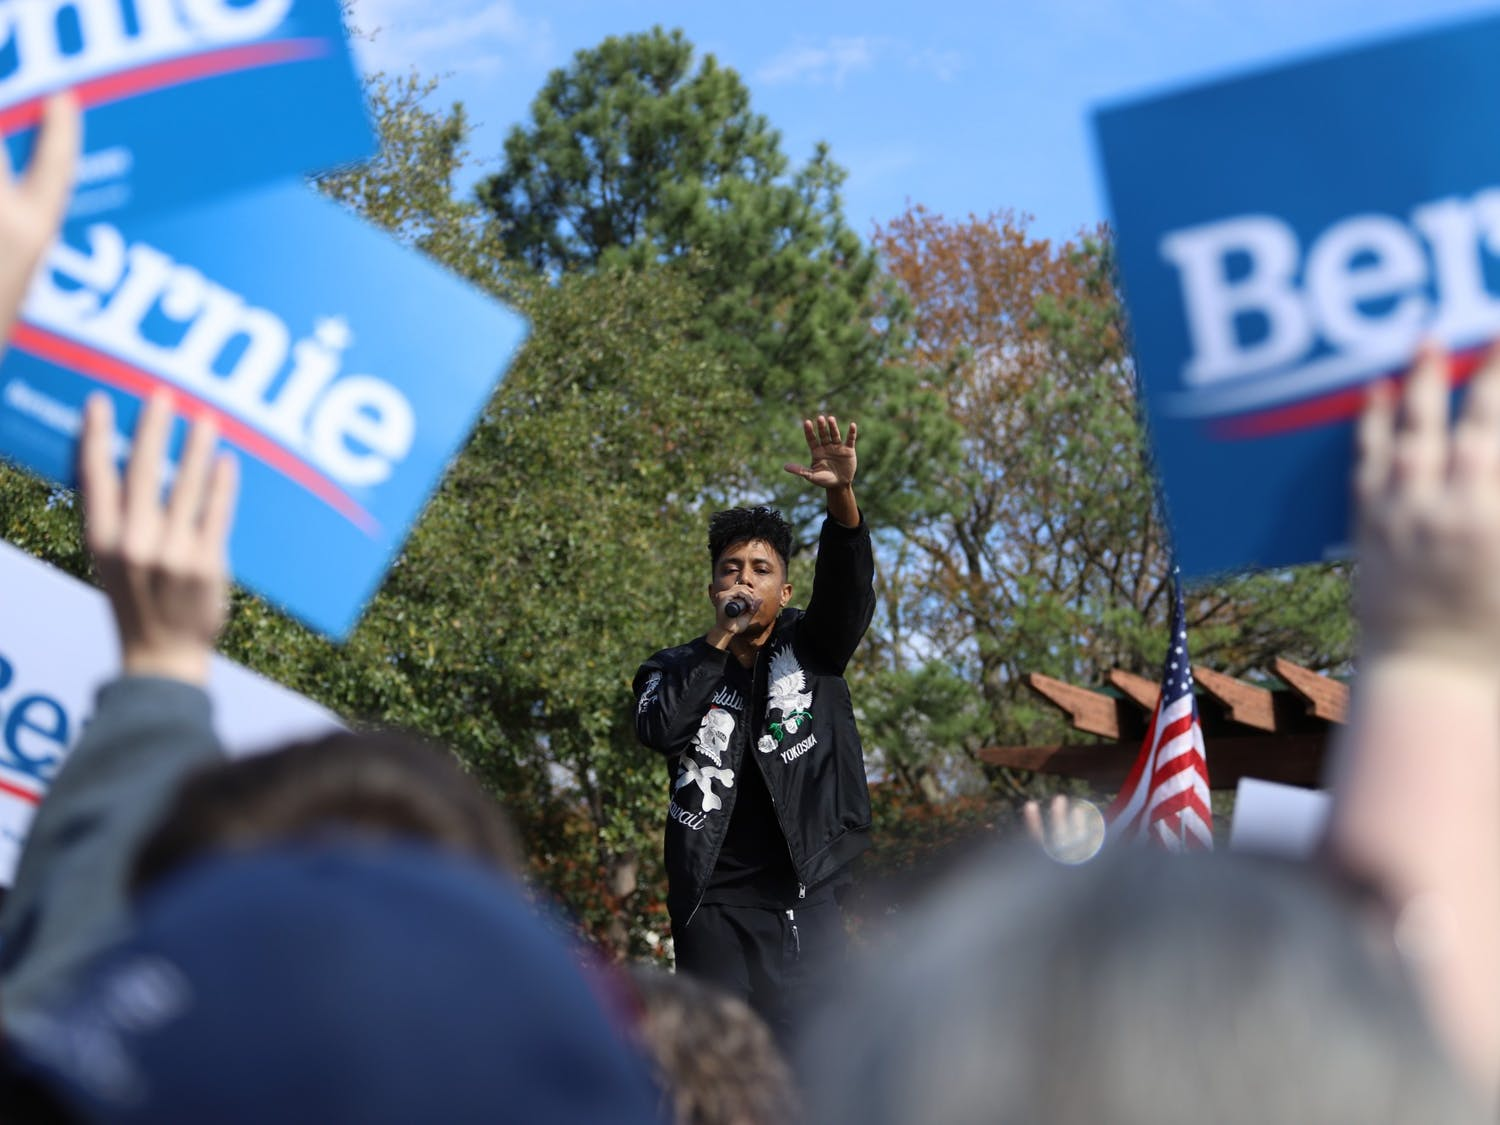 Southern hip-hop duo Blackillac, compromised of Emcees Zeale and Phranchyze, sings at a Bernie Sanders rally Feb. 28, 2020, at Finlay Park in Columbia.